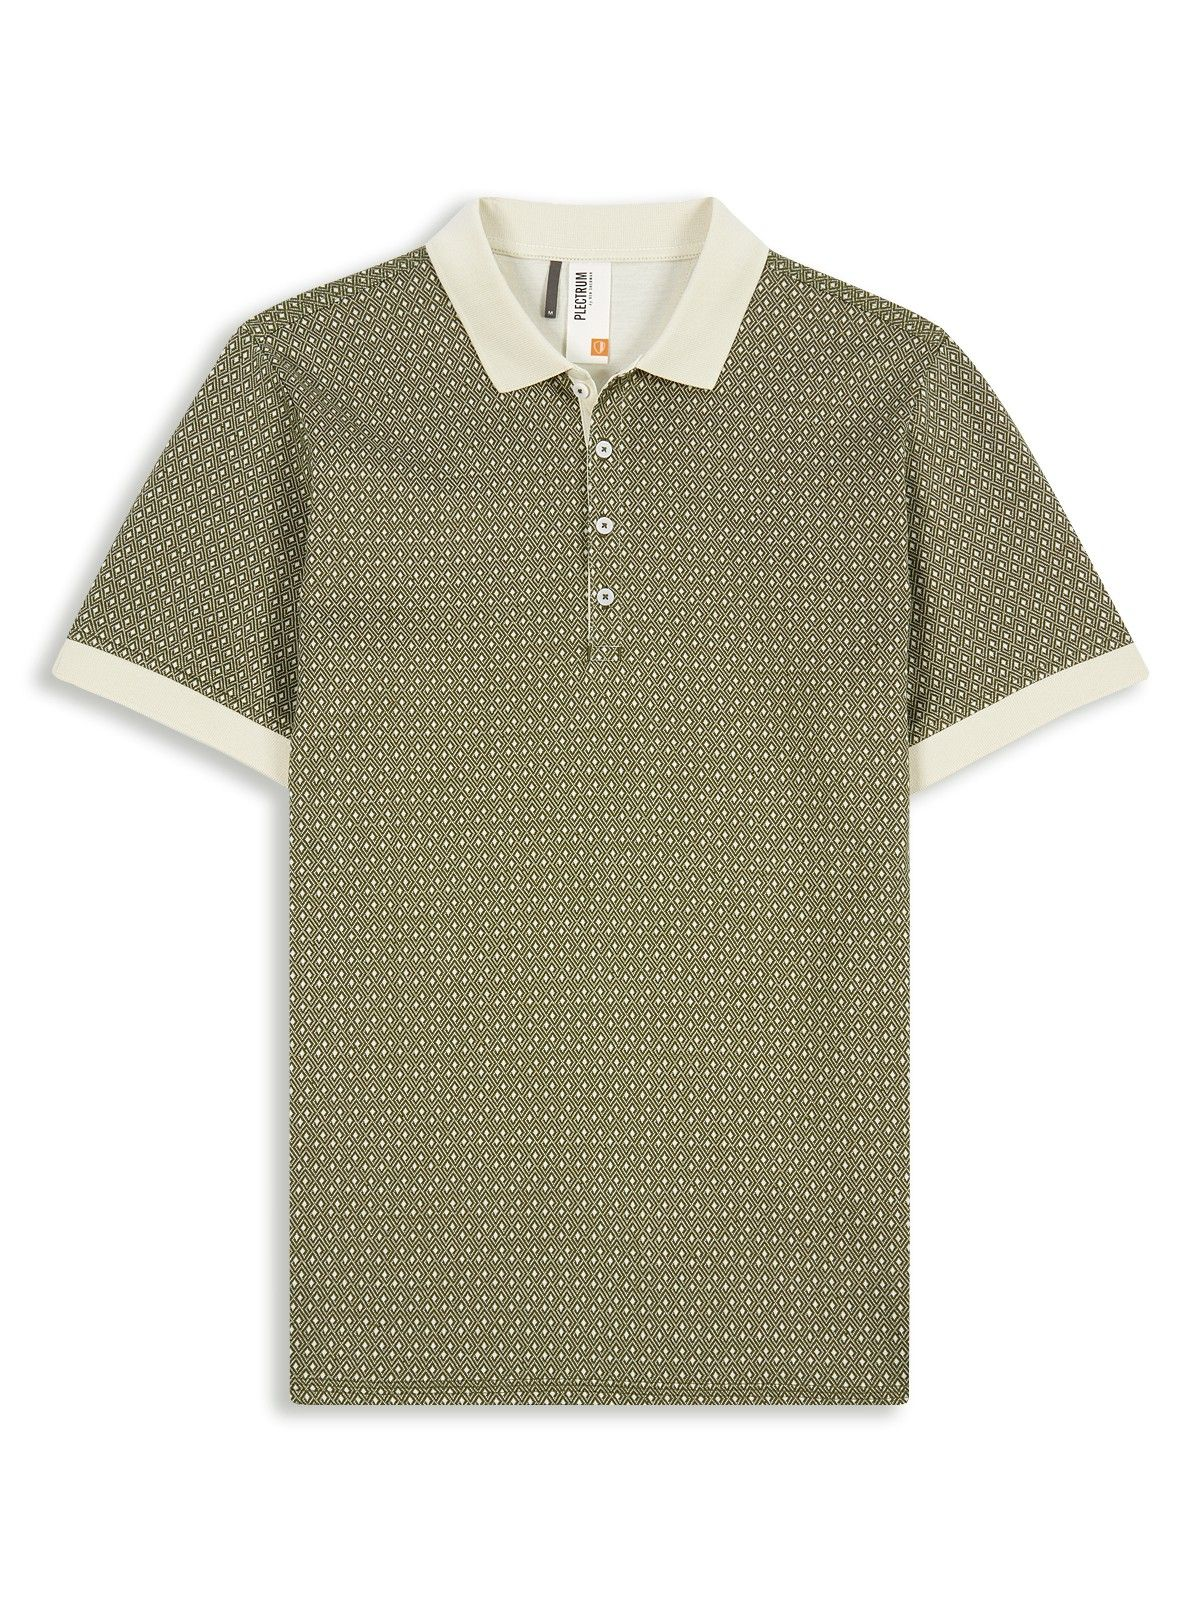 Diamond Jacquard Polo Egret Ben Sherman Picking Up Men